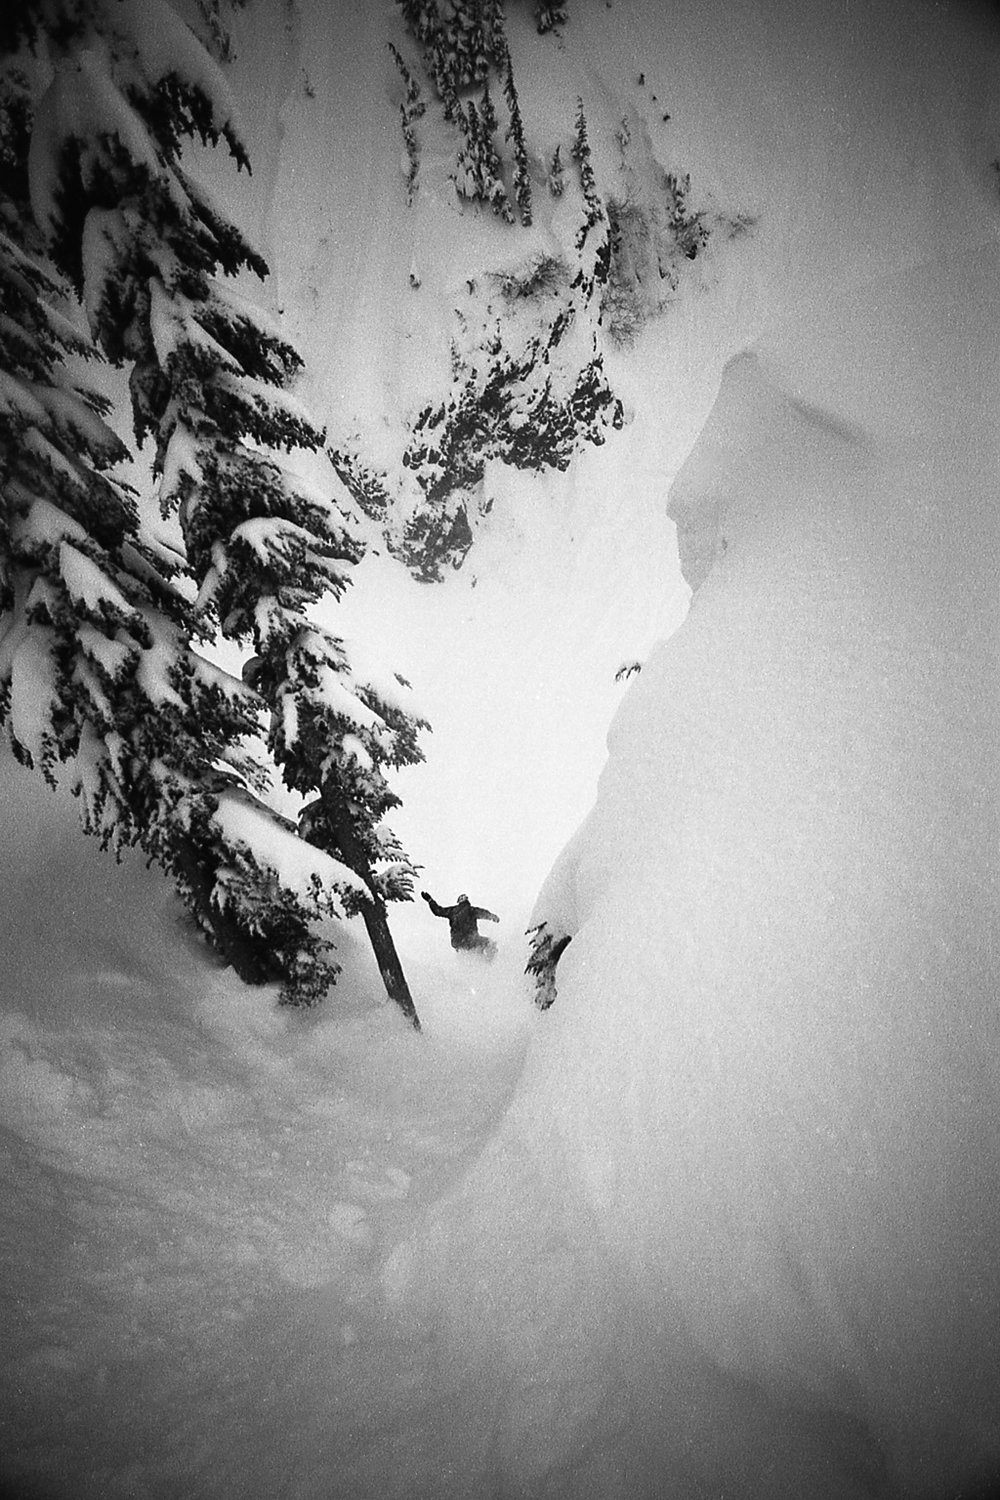 Andy Hetzel, Mt Baker, WA, 1996, Chris Brunkhart photo